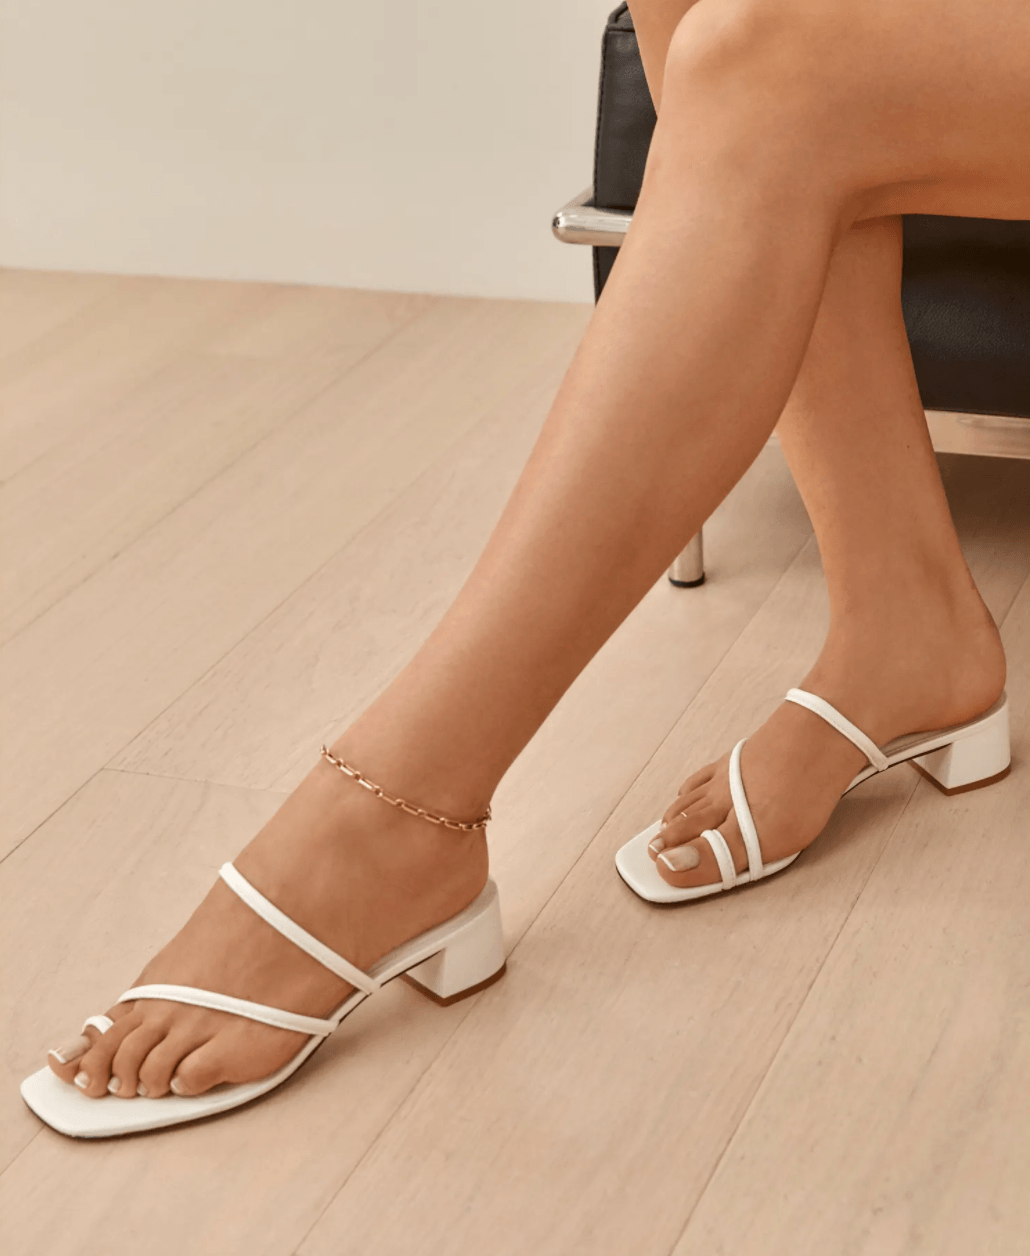 Strappy Heels, by Fashion Blogger What The Fab